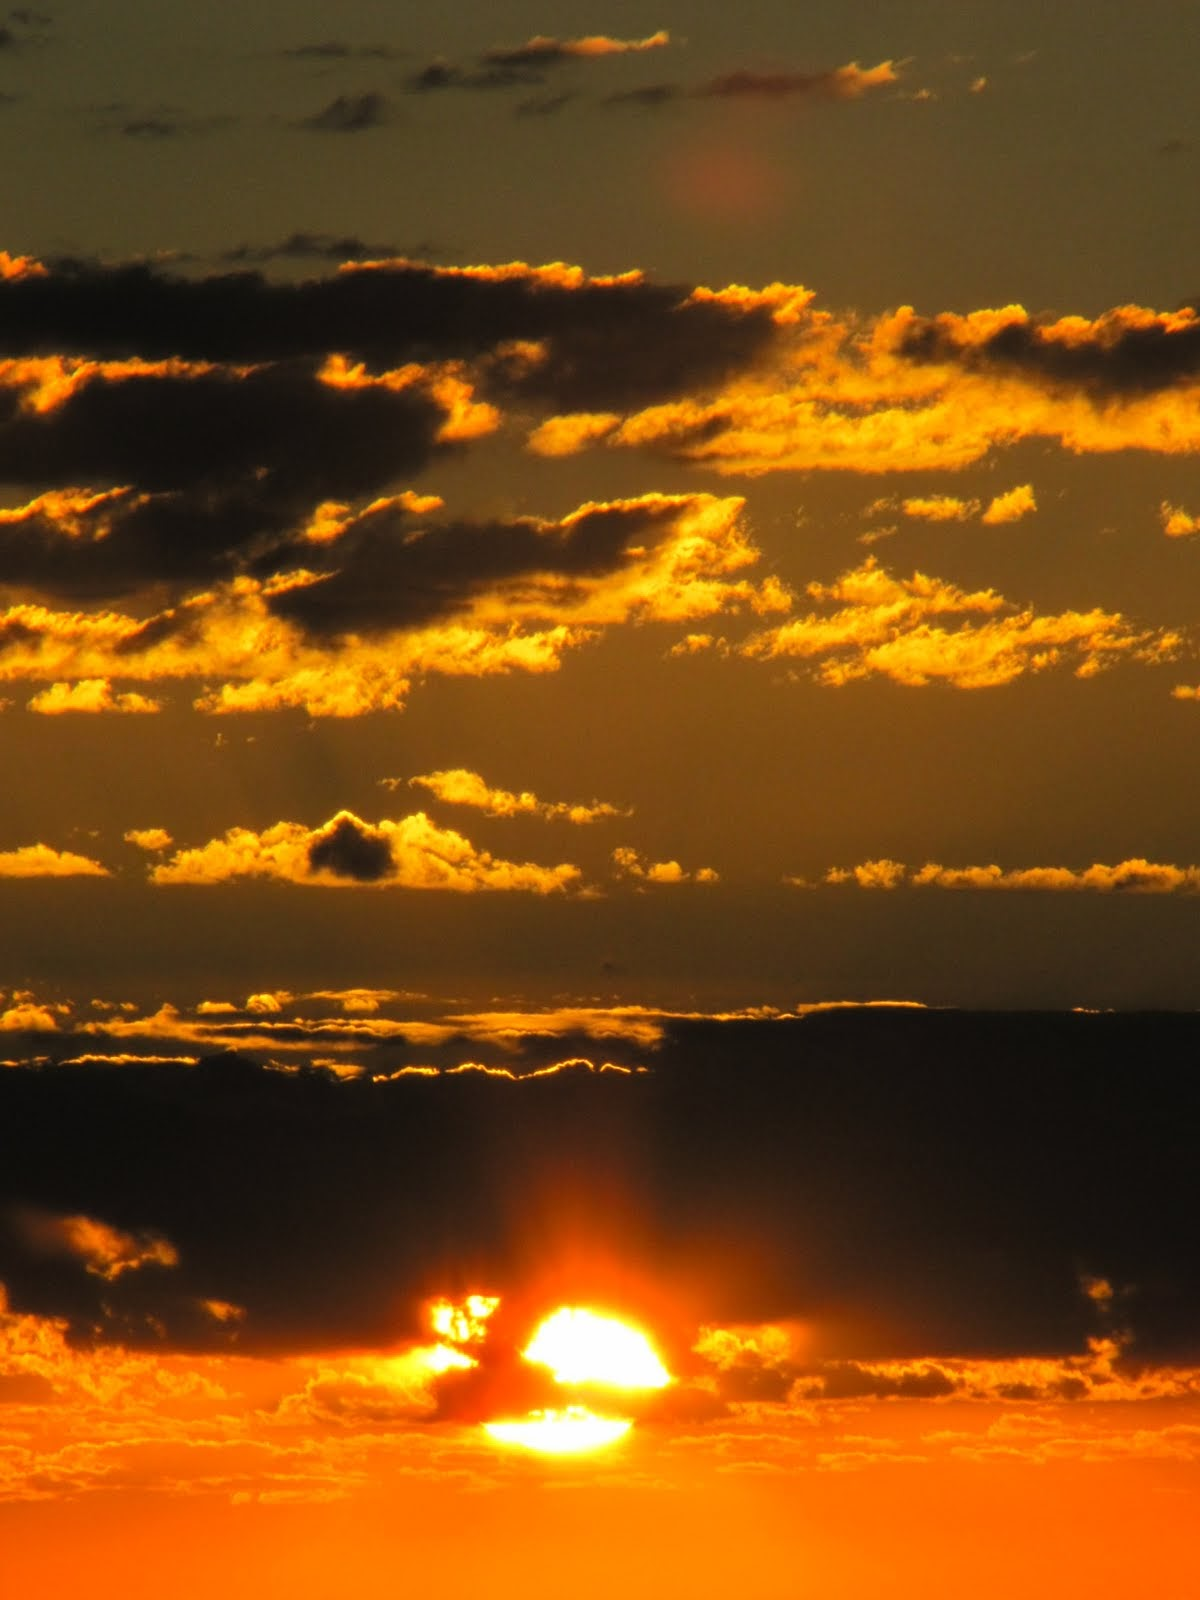 The Sun reaches the first clouds